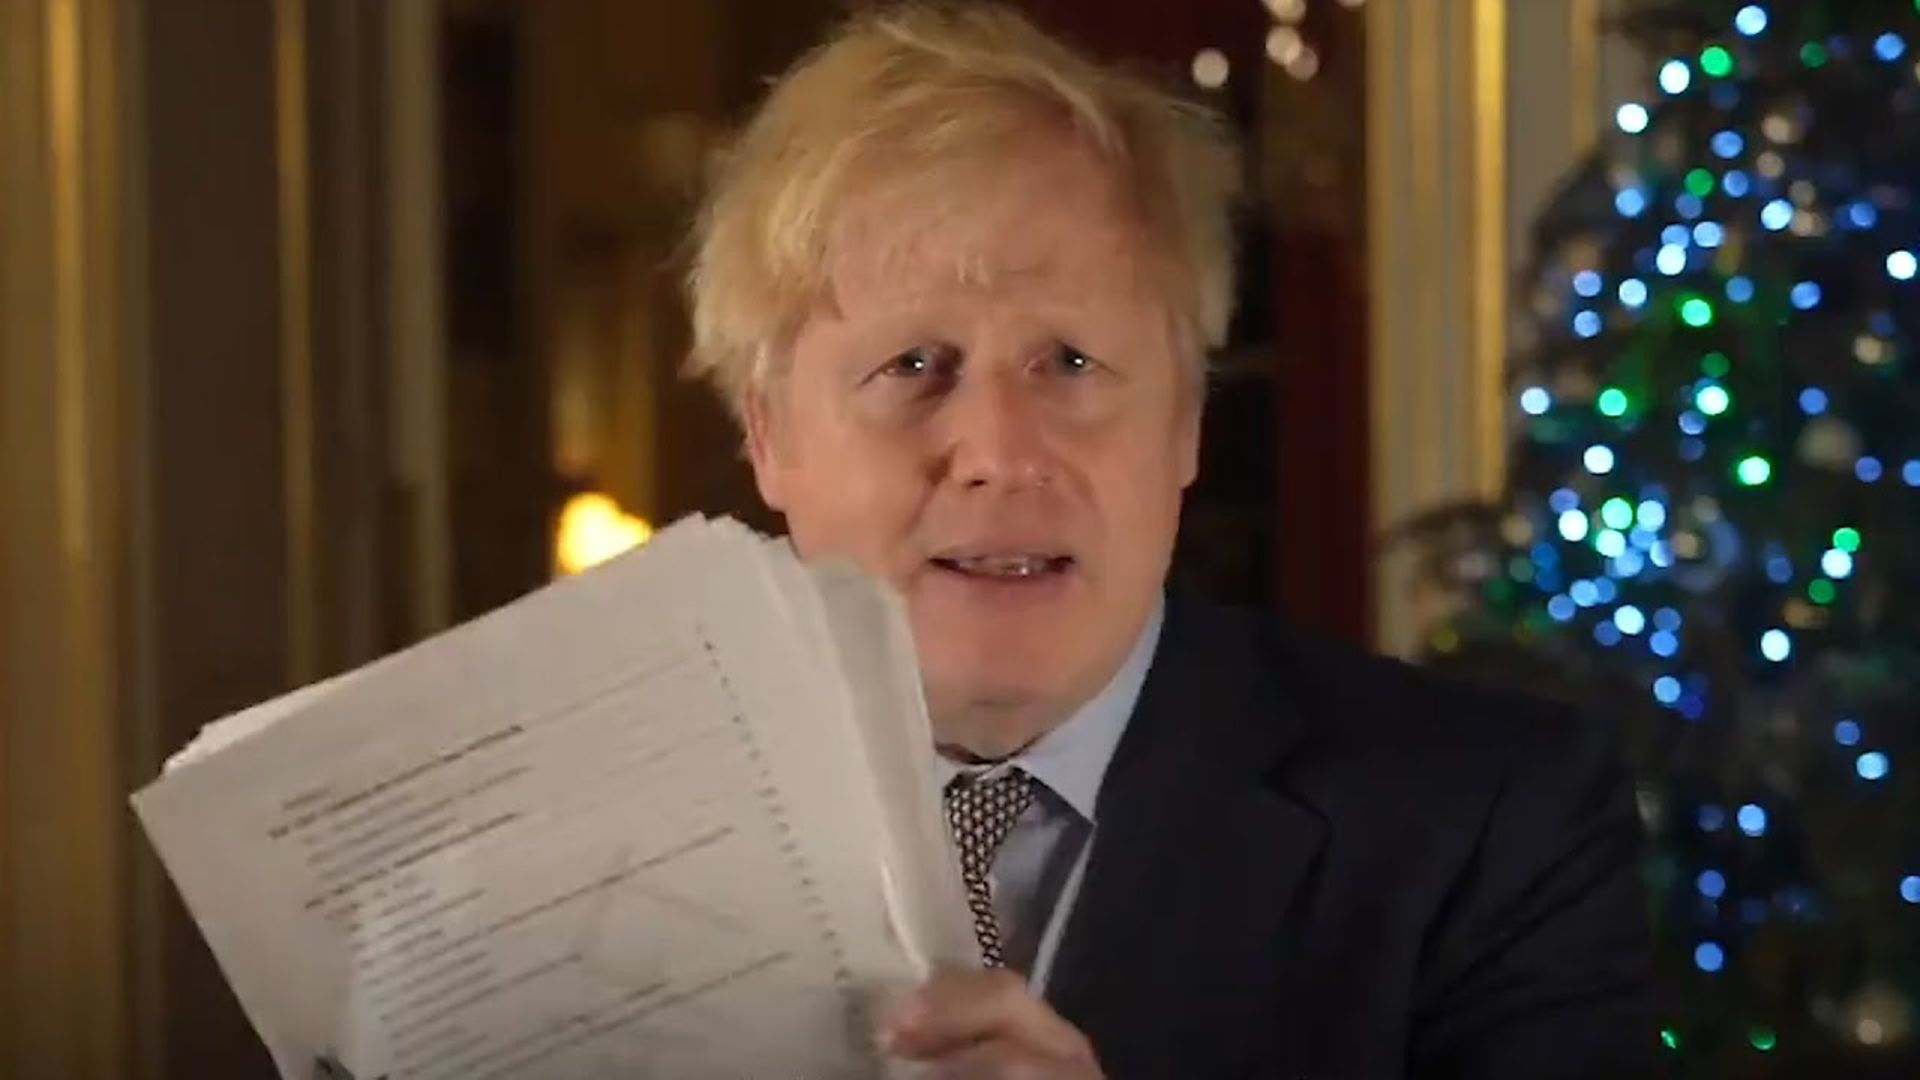 Boris Johnson with his Brexit deal - Credit: Number 10/Twitter